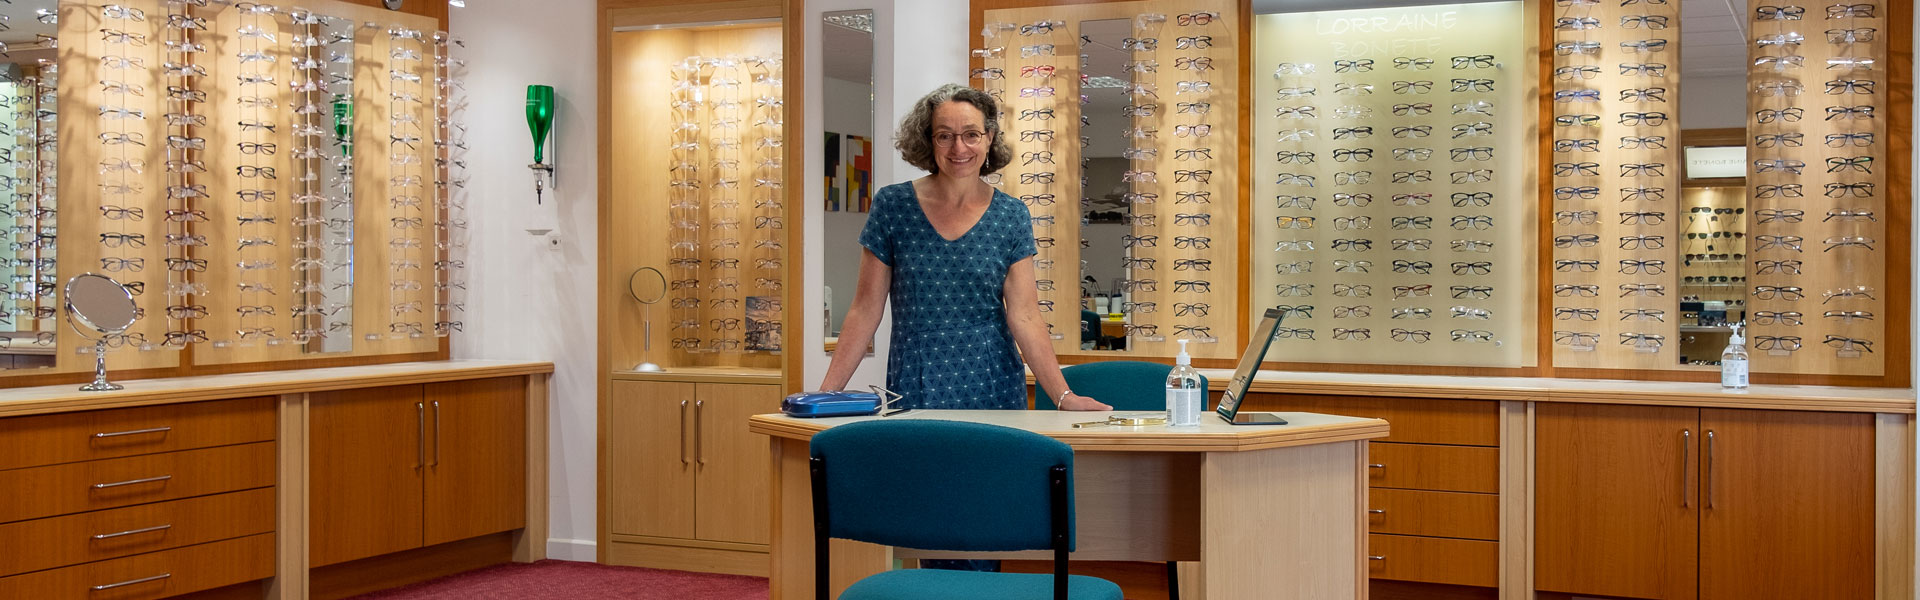 Lorraine Bonete in Opticians Practice